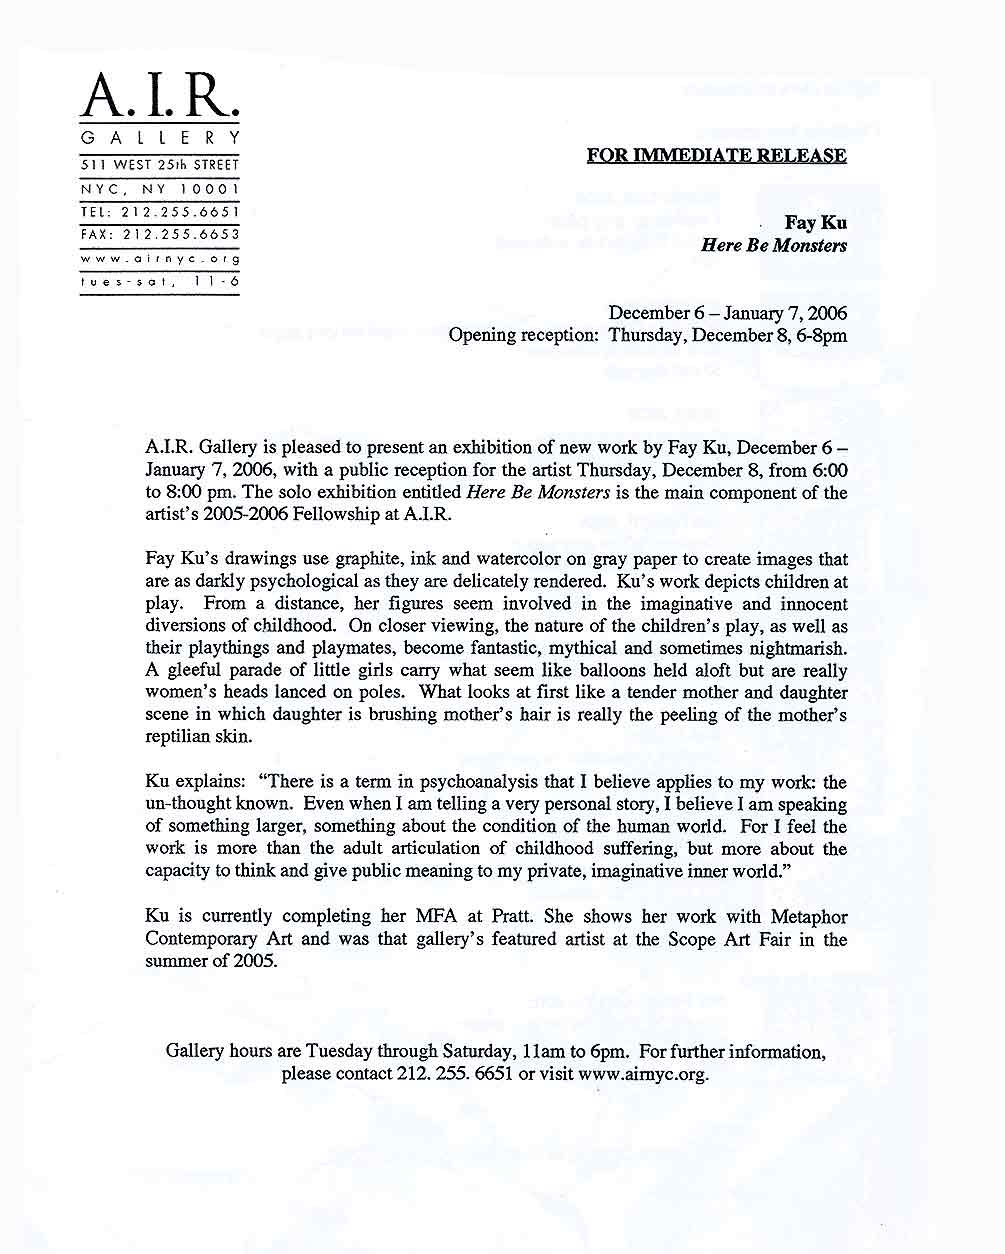 Here Be Monsters, press release, pg 1